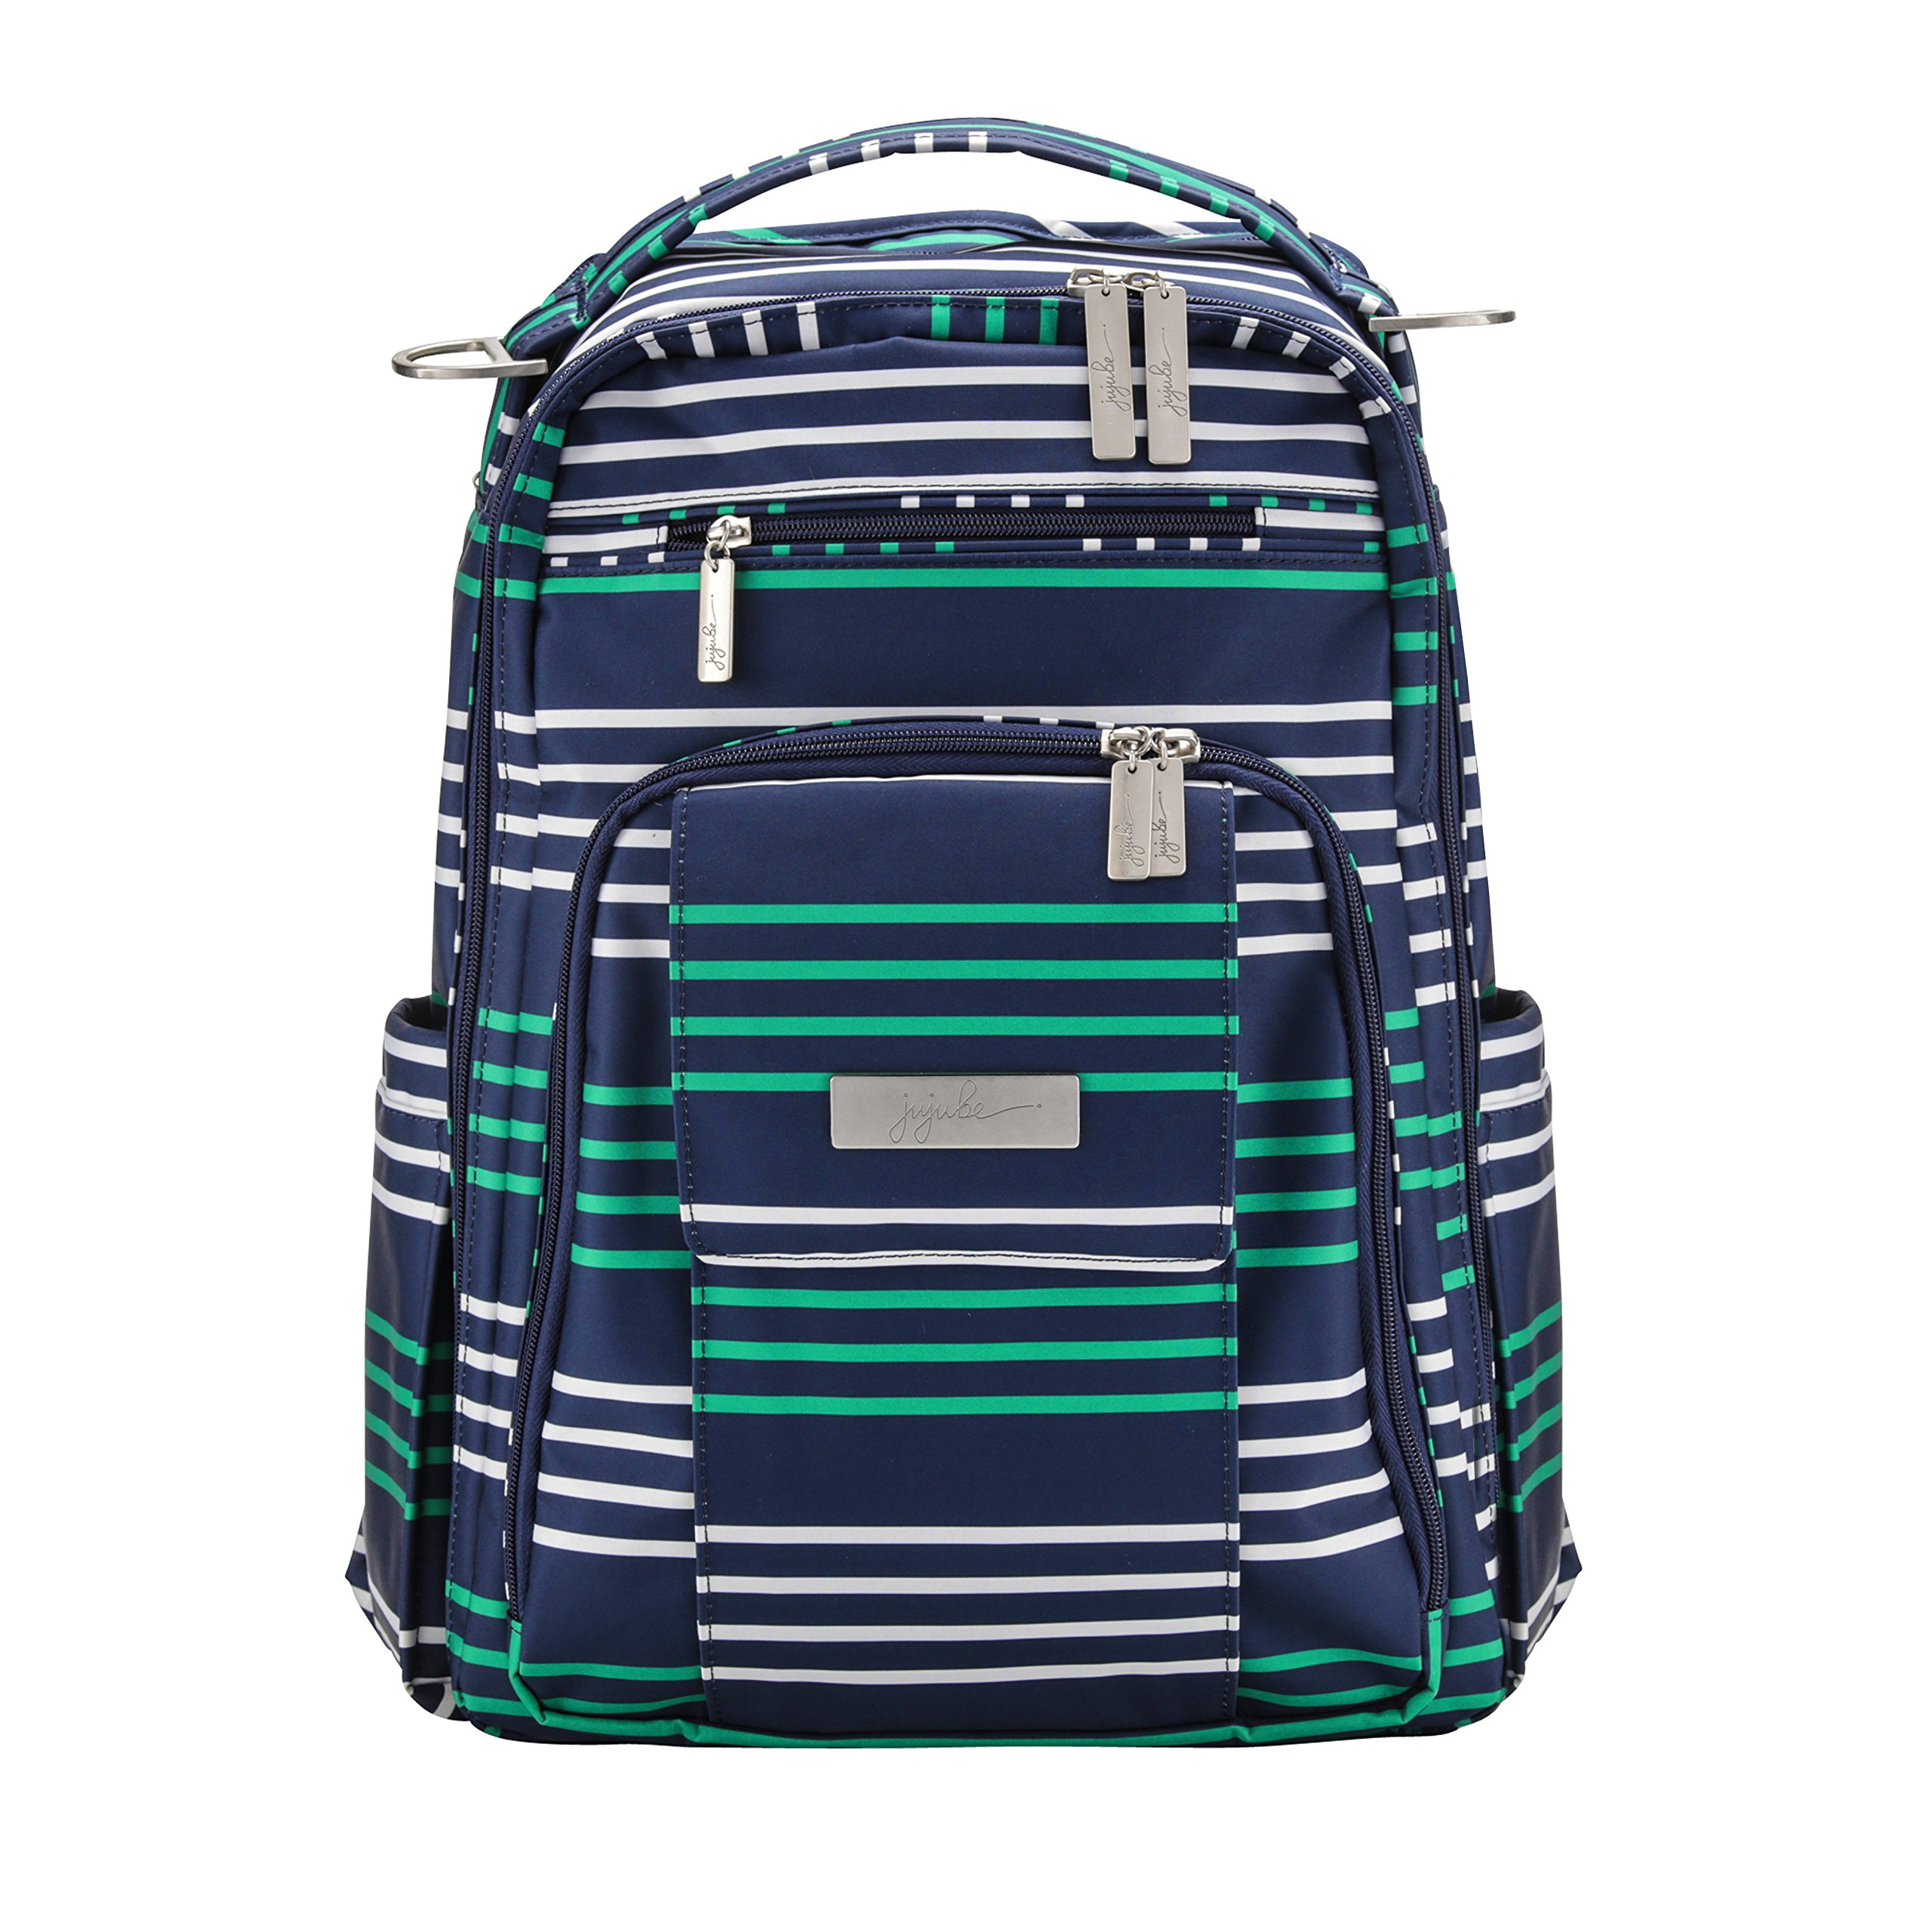 JuJuBe Be Right Back Multi-Functional Structured Backpack/Diaper Bag, Coastal Collection-Providence - Navy/Teal/White Stripes